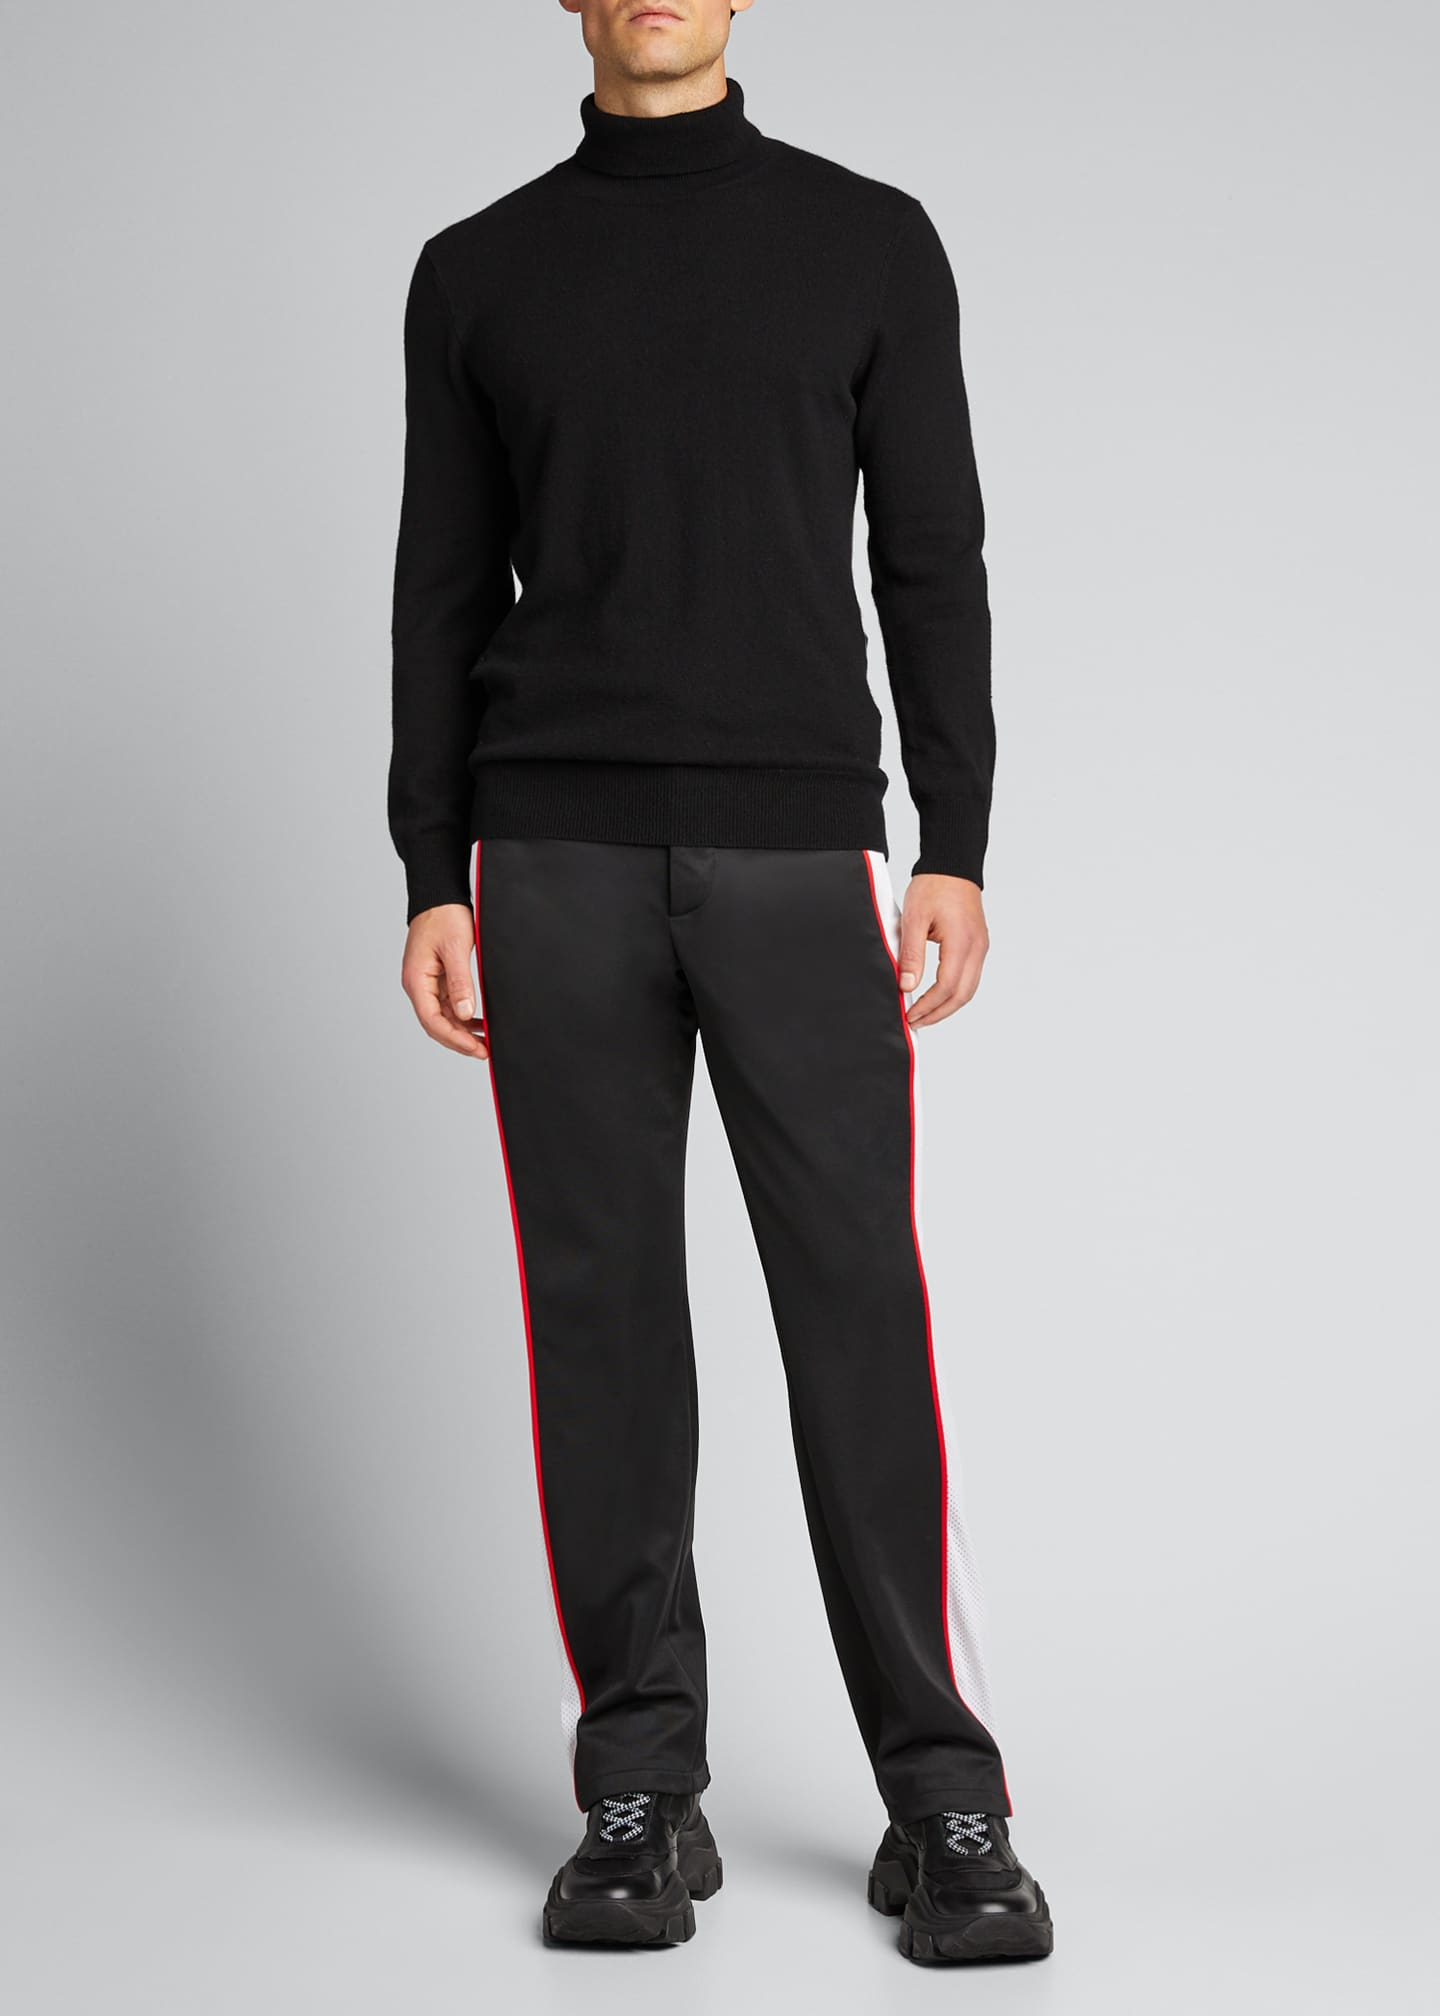 Image 1 of 5: Men's Side-Stripe Track Pants